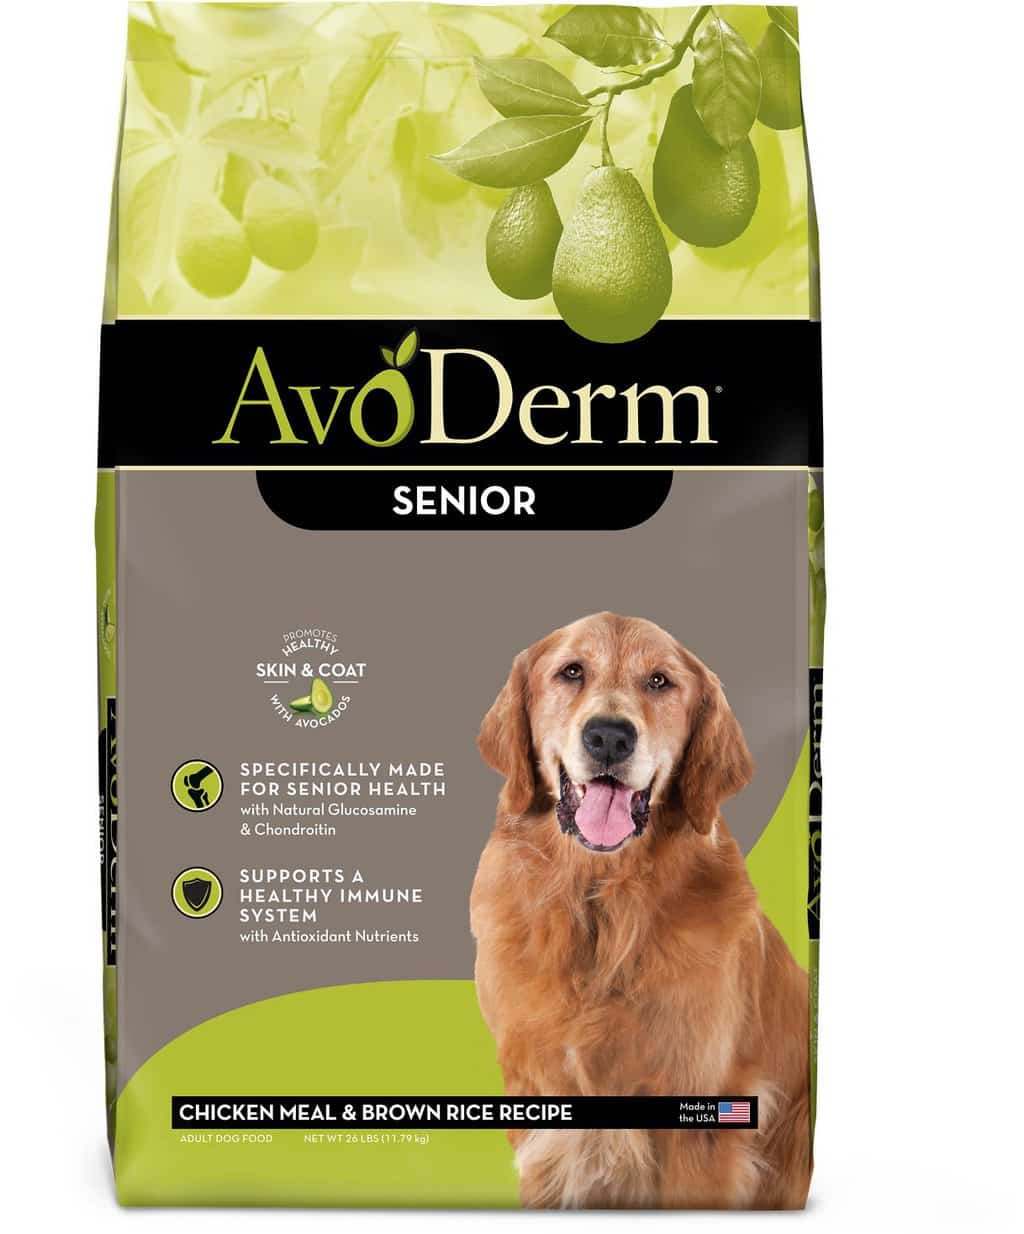 Avoderm Dog Food Review 2021: Is Avocado Best for Dogs? 17